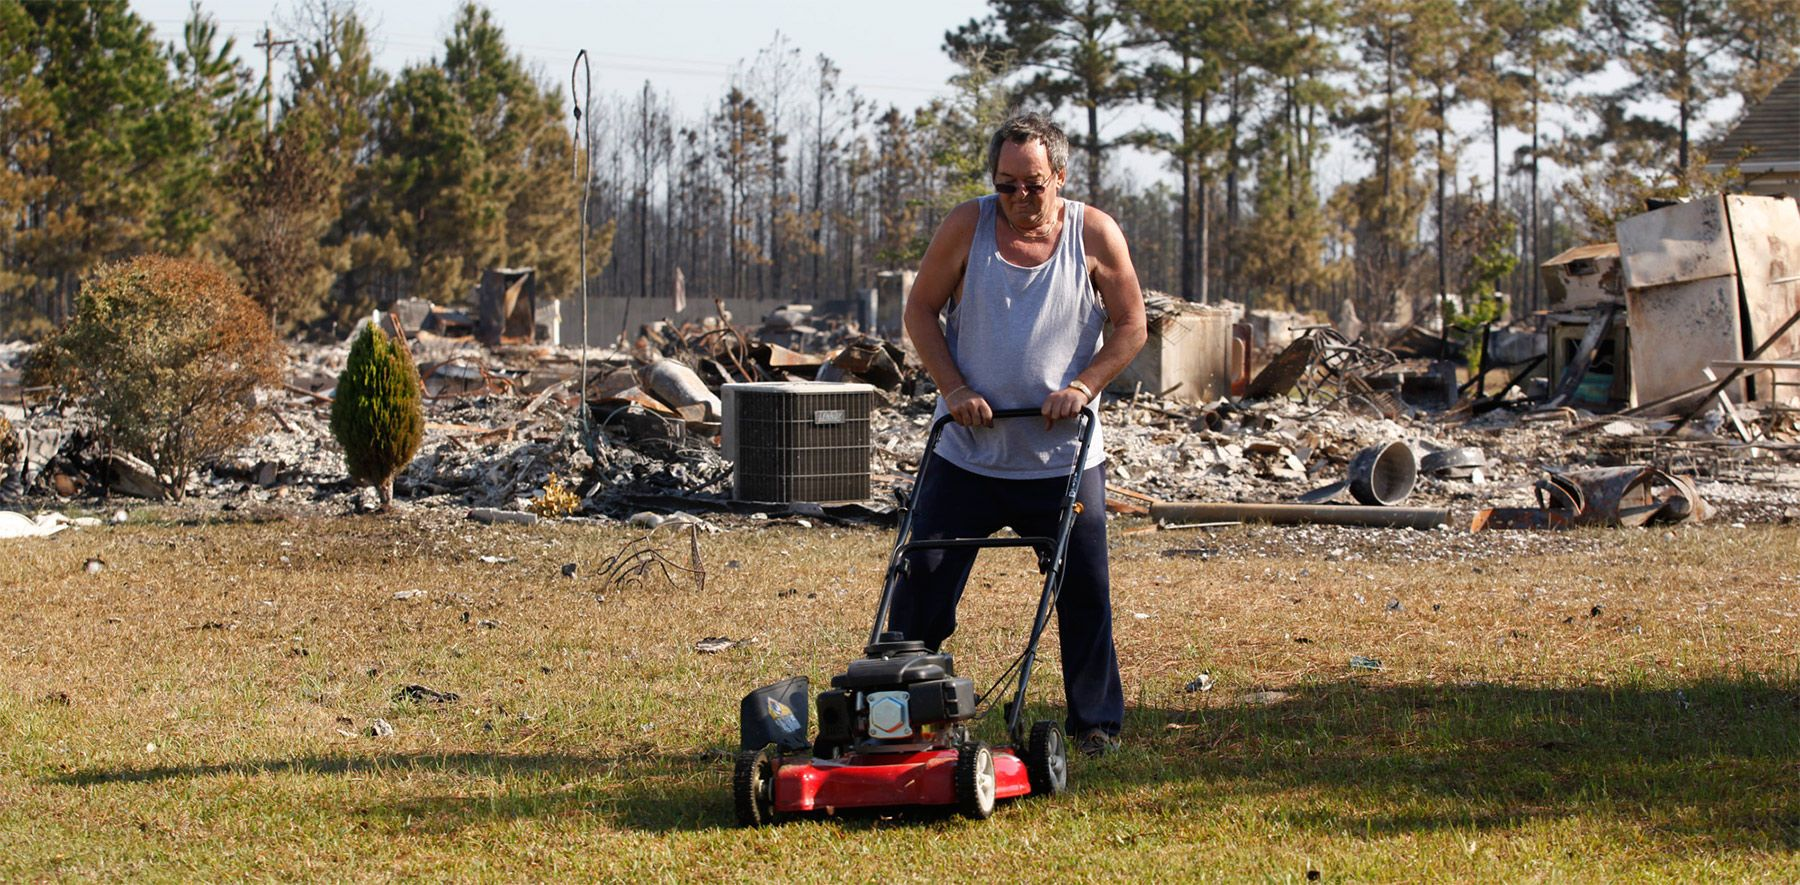 With his neighbor's house in the background in ruin, Robert Whitlock of Marsh Glen drive in Barefoot Resort, mows his yard Friday afternoon in North Myrtle Beach. {quote}The waterway probably went down three foot I used so much water to save it,{quote} said Whitlock about the five hours he watered his house Thursday morning to keep it from the firestorm.